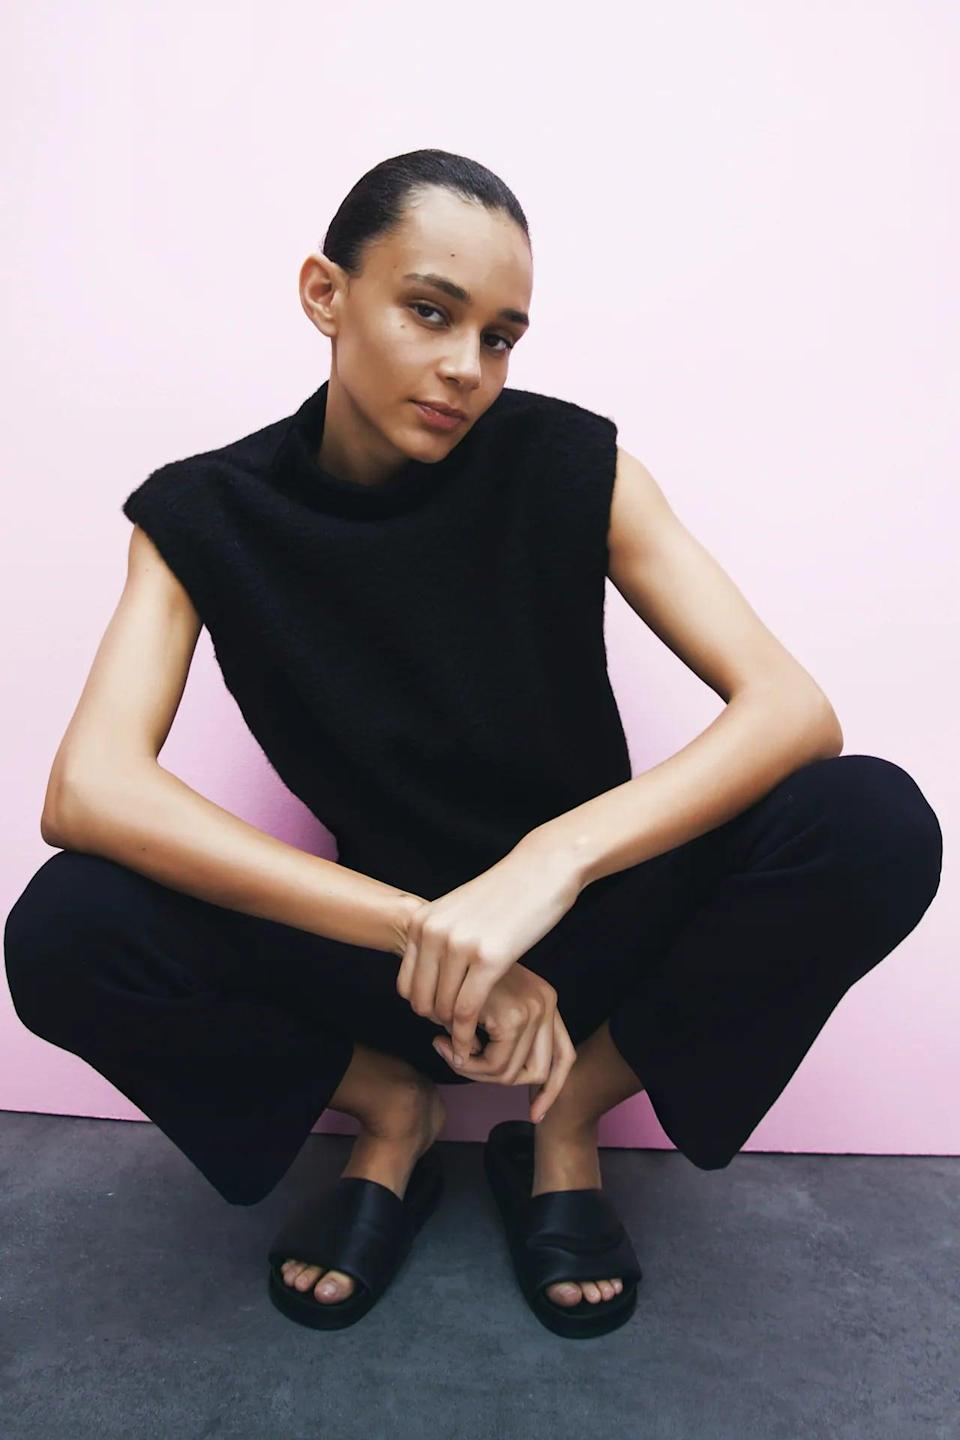 <p>Whether you like a puffed platform that has more of a sporty vibe or a thong sandal, the new minimalist shoe is the sleek leather sandal, rather than the strappy stiletto kitten heel that was big the year before.</p> <p><span>Zara Flat Padded Leather Sandals</span> ($60)</p>